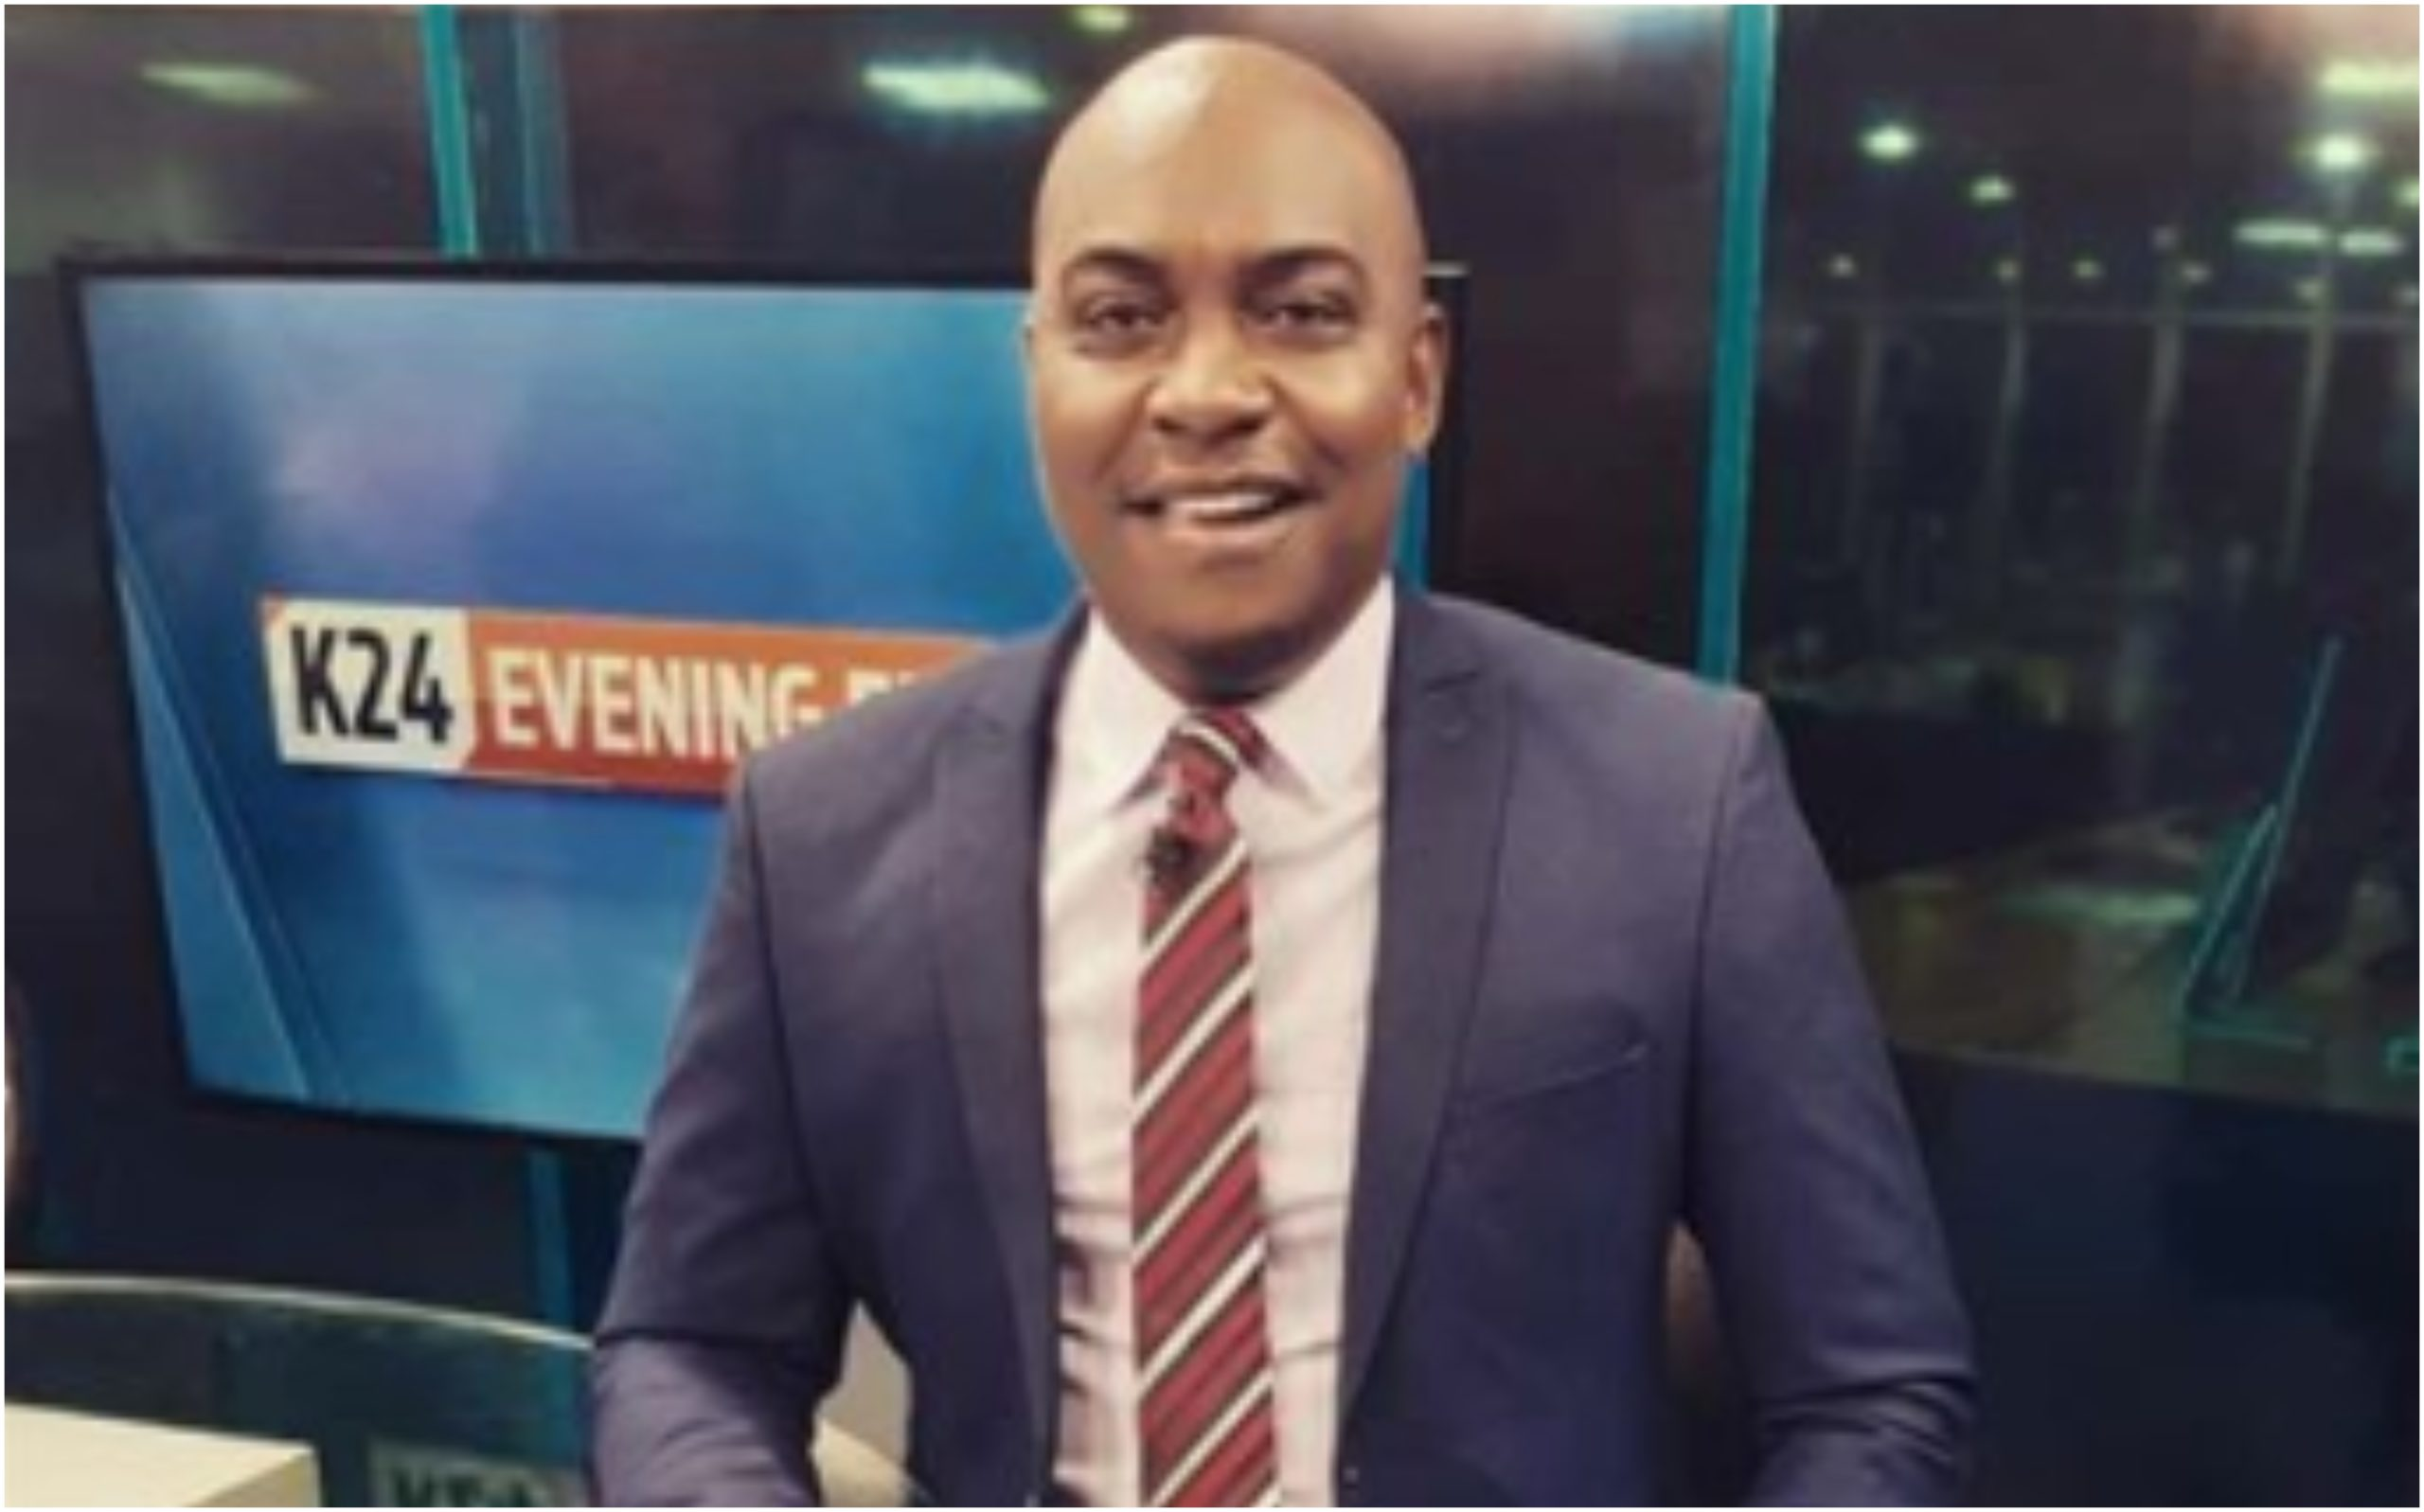 """""""I will not apologize for the truth!"""" K24´s Eric Njoka declares as the station´s woes deepen"""